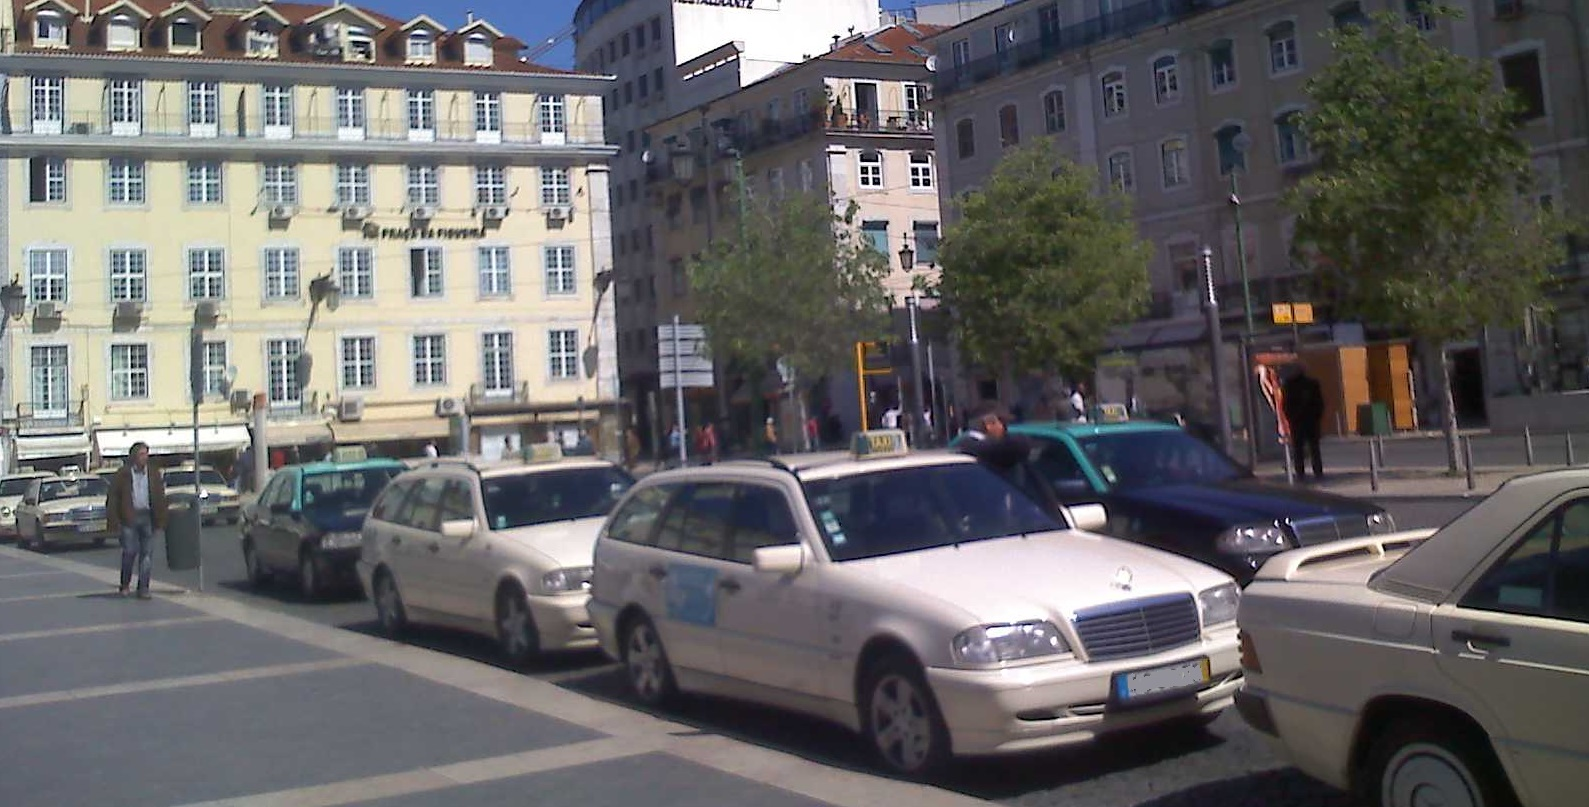 Taxis in Portugal